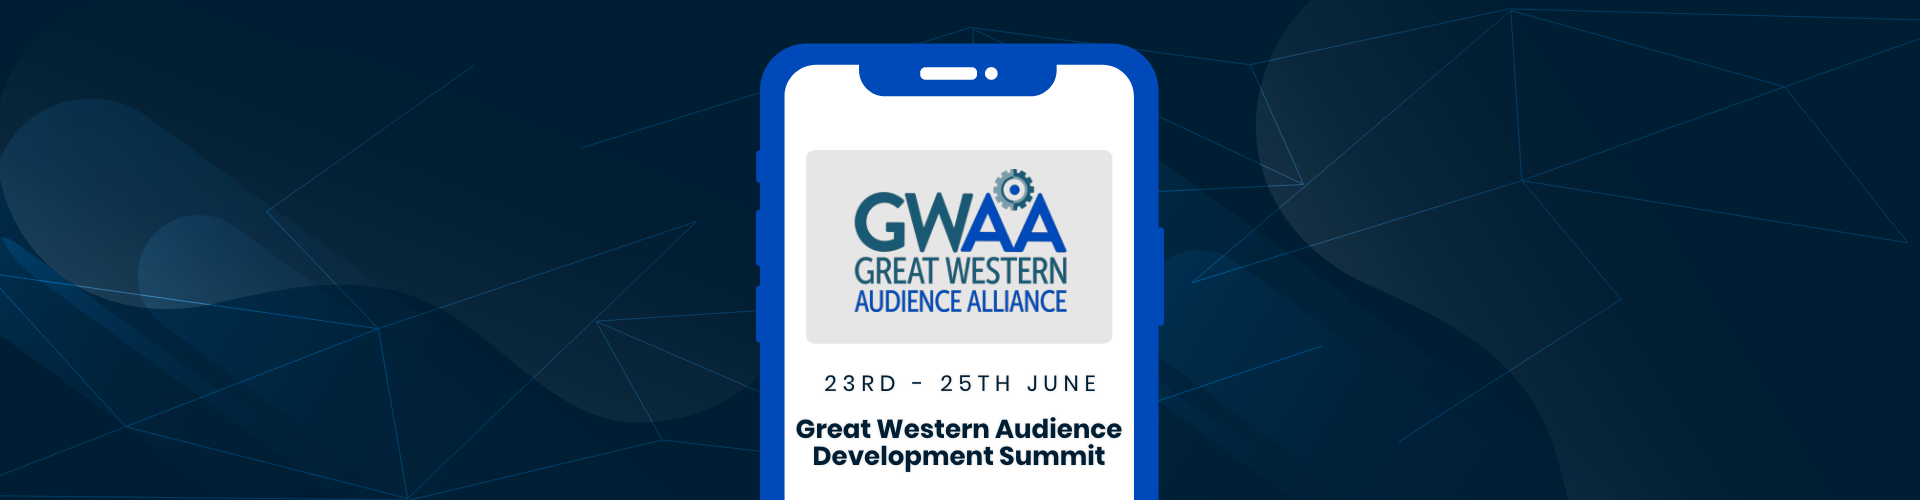 PageSuite are Proud to Sponsor the Great Western Audience Development Summit